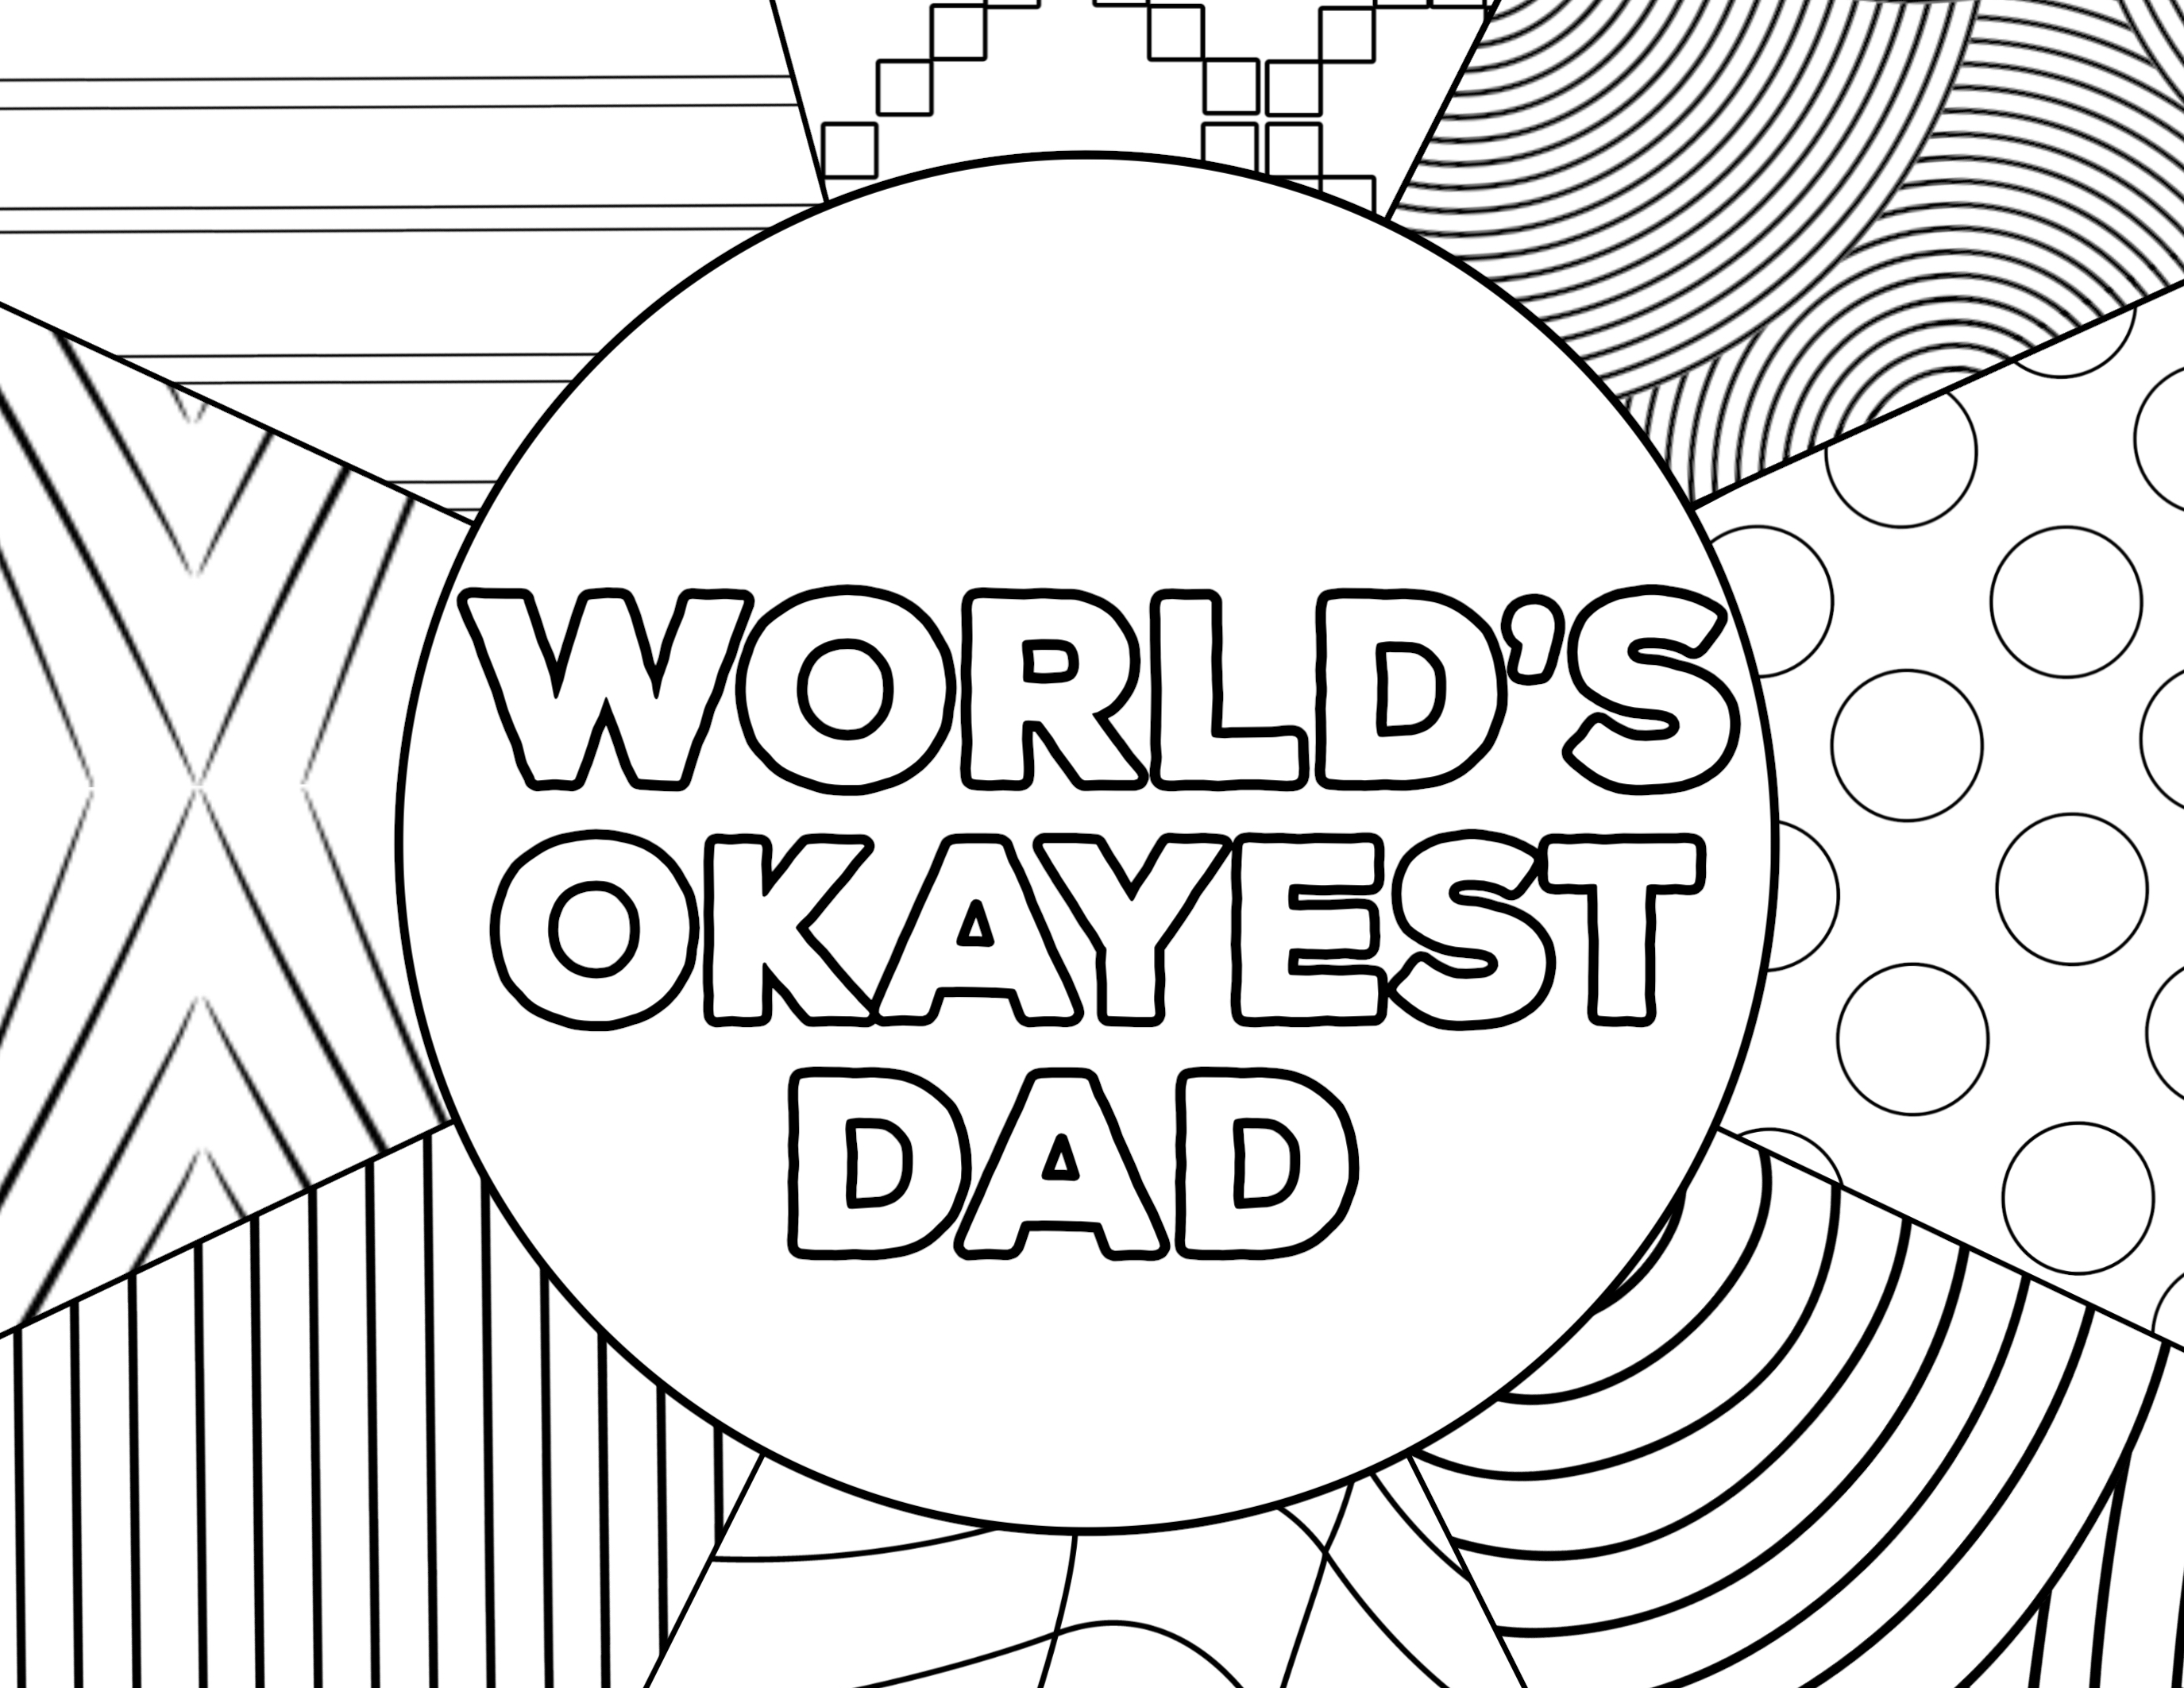 picture about Father's Day Printable Cards named Worlds Okayest Father Fathers Working day Card Printable - Paper